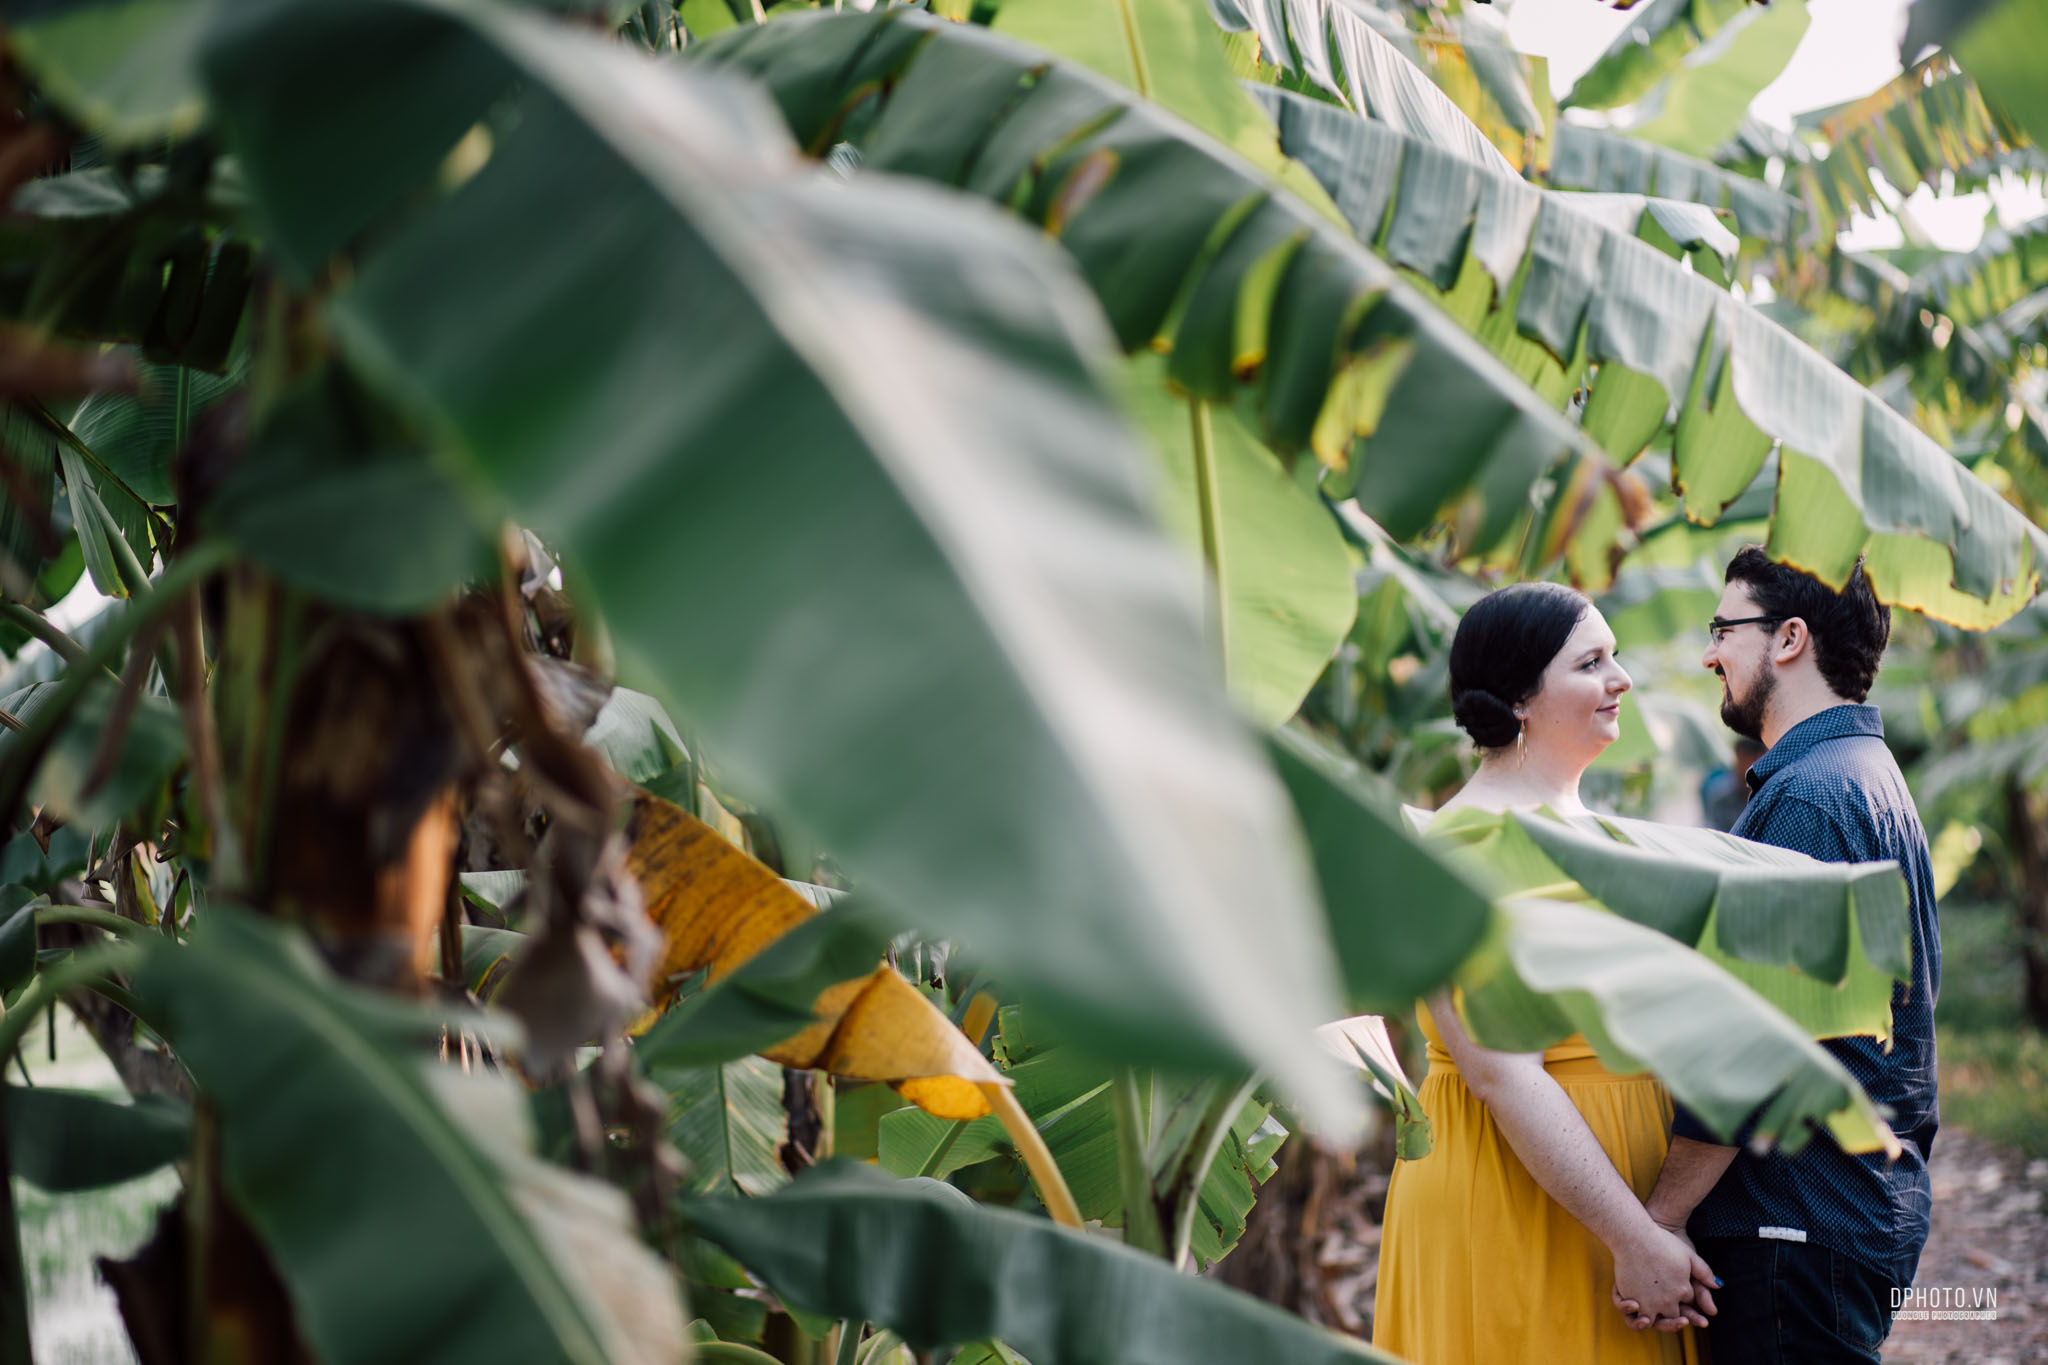 engagement_photo_in_sai_gon_ho_chi_minh_viet_nam56